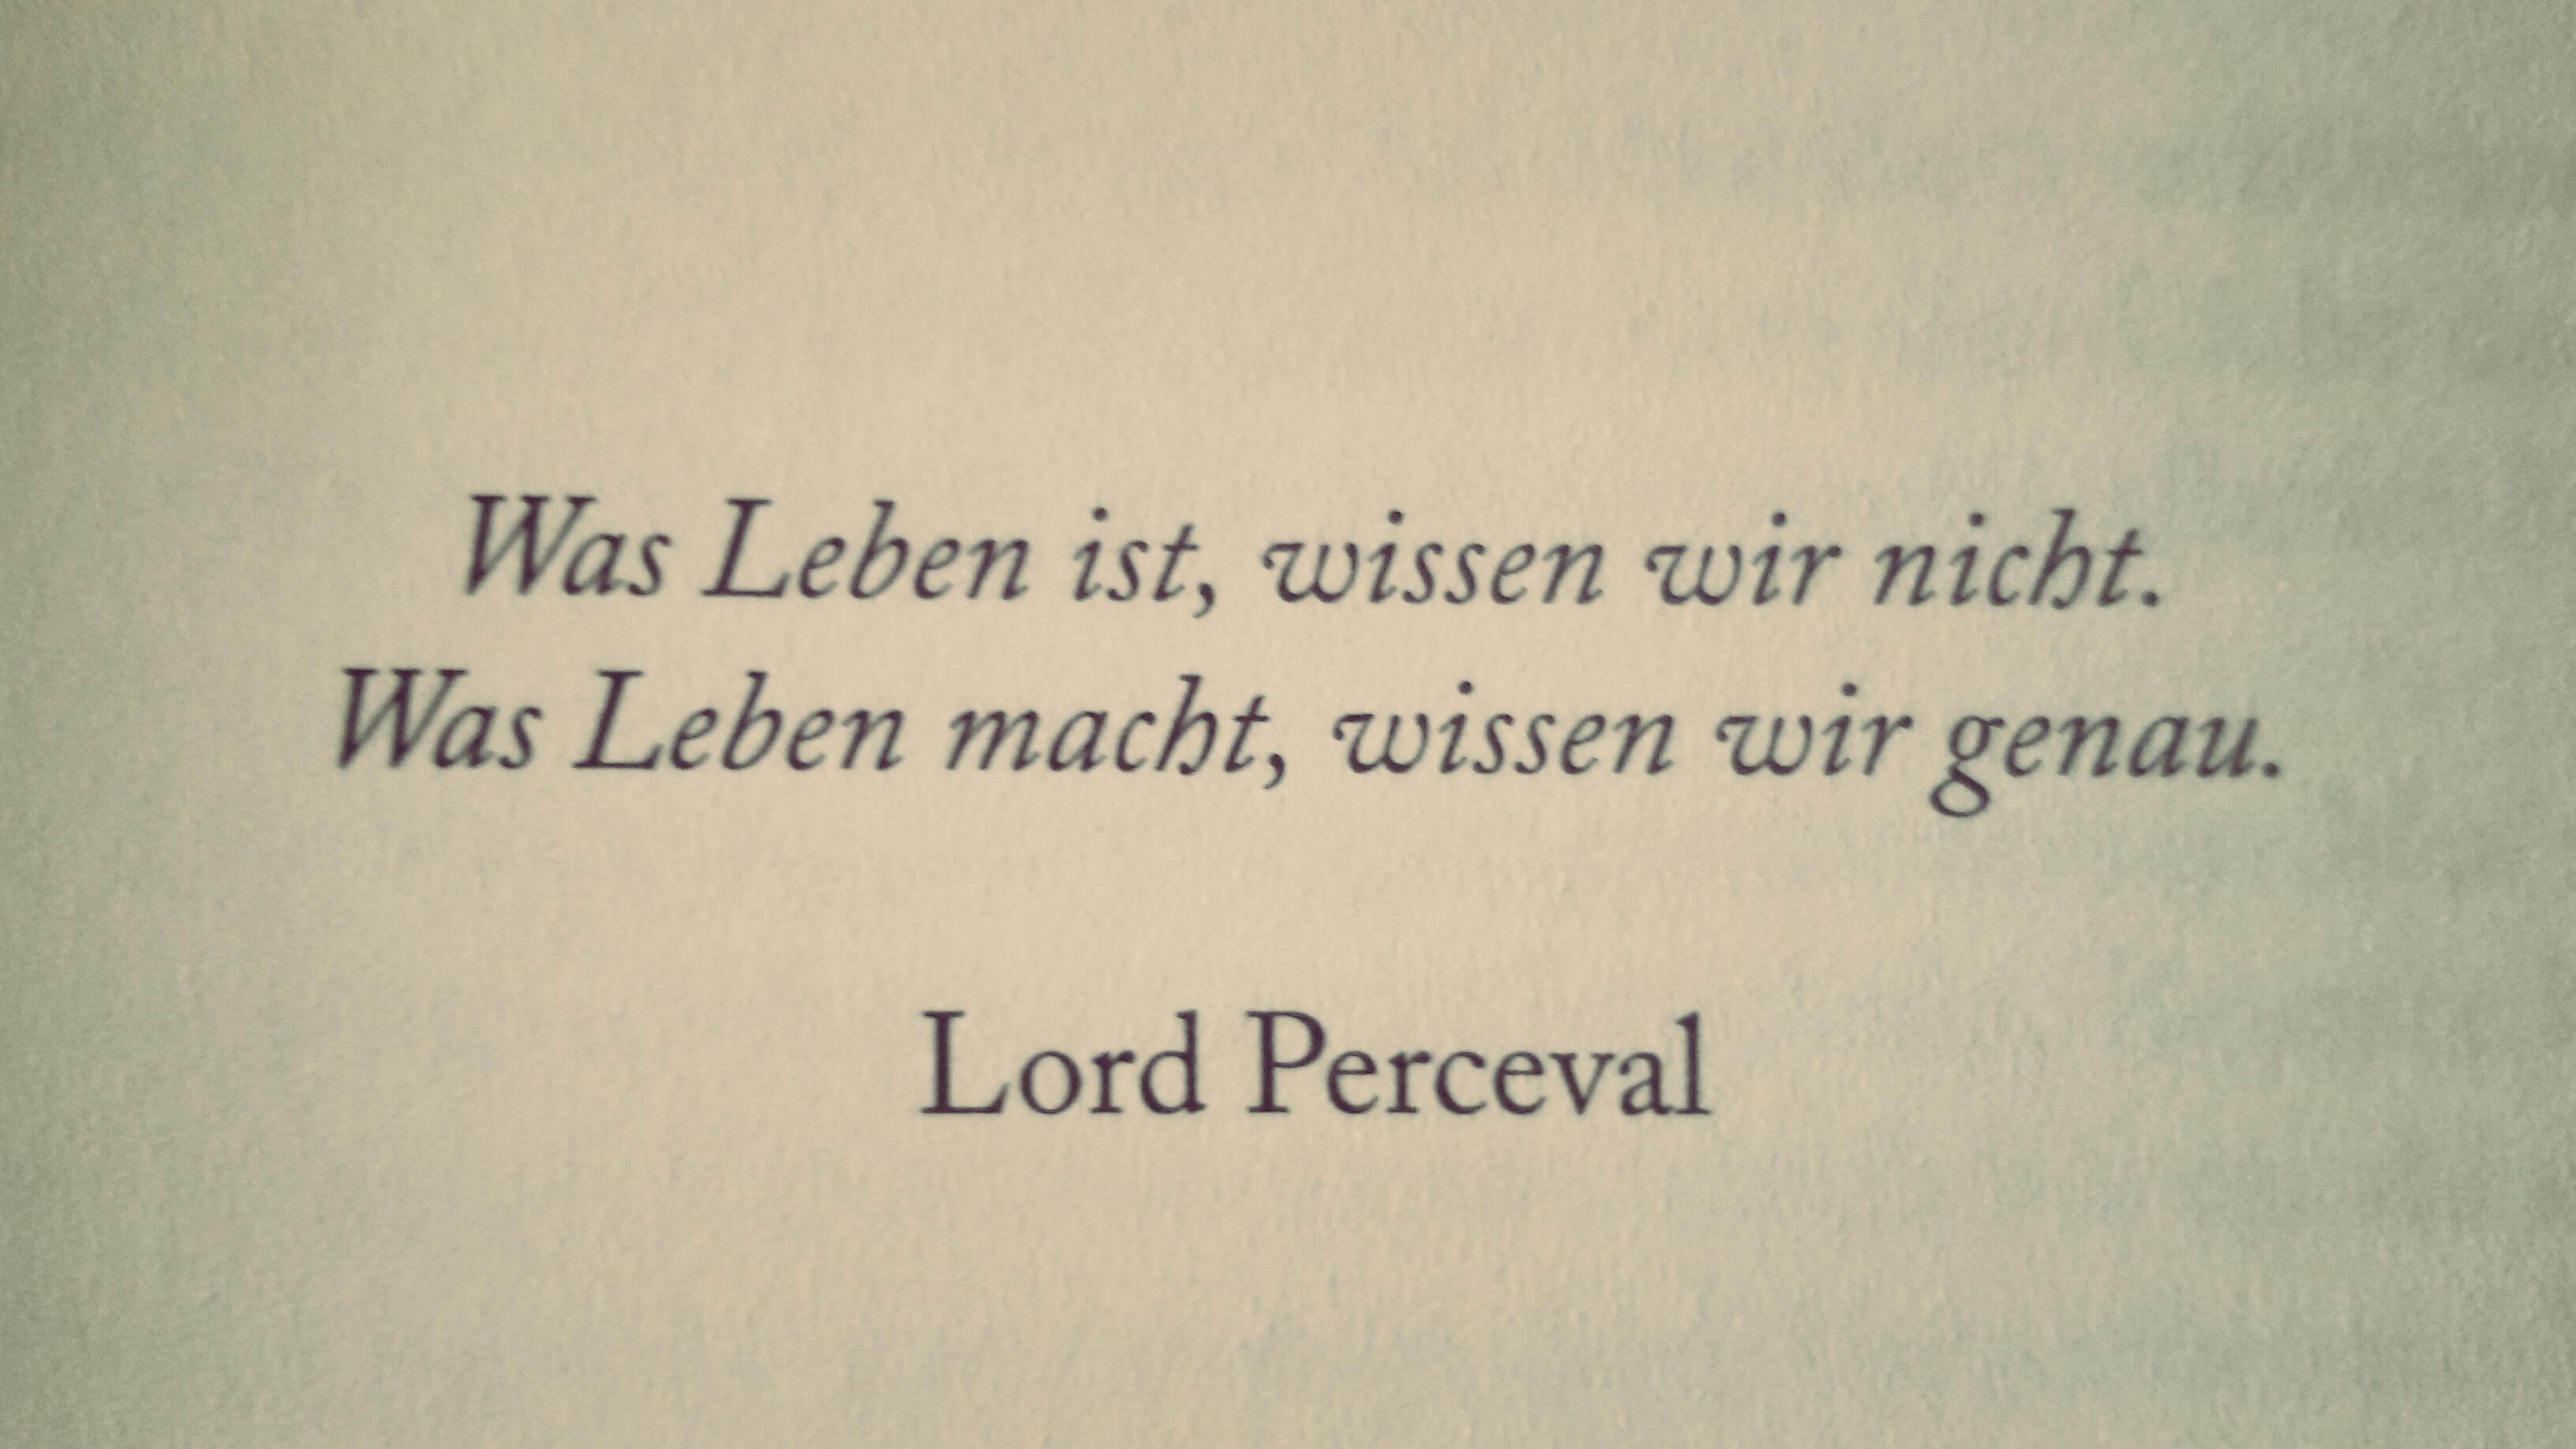 Lord Perceval